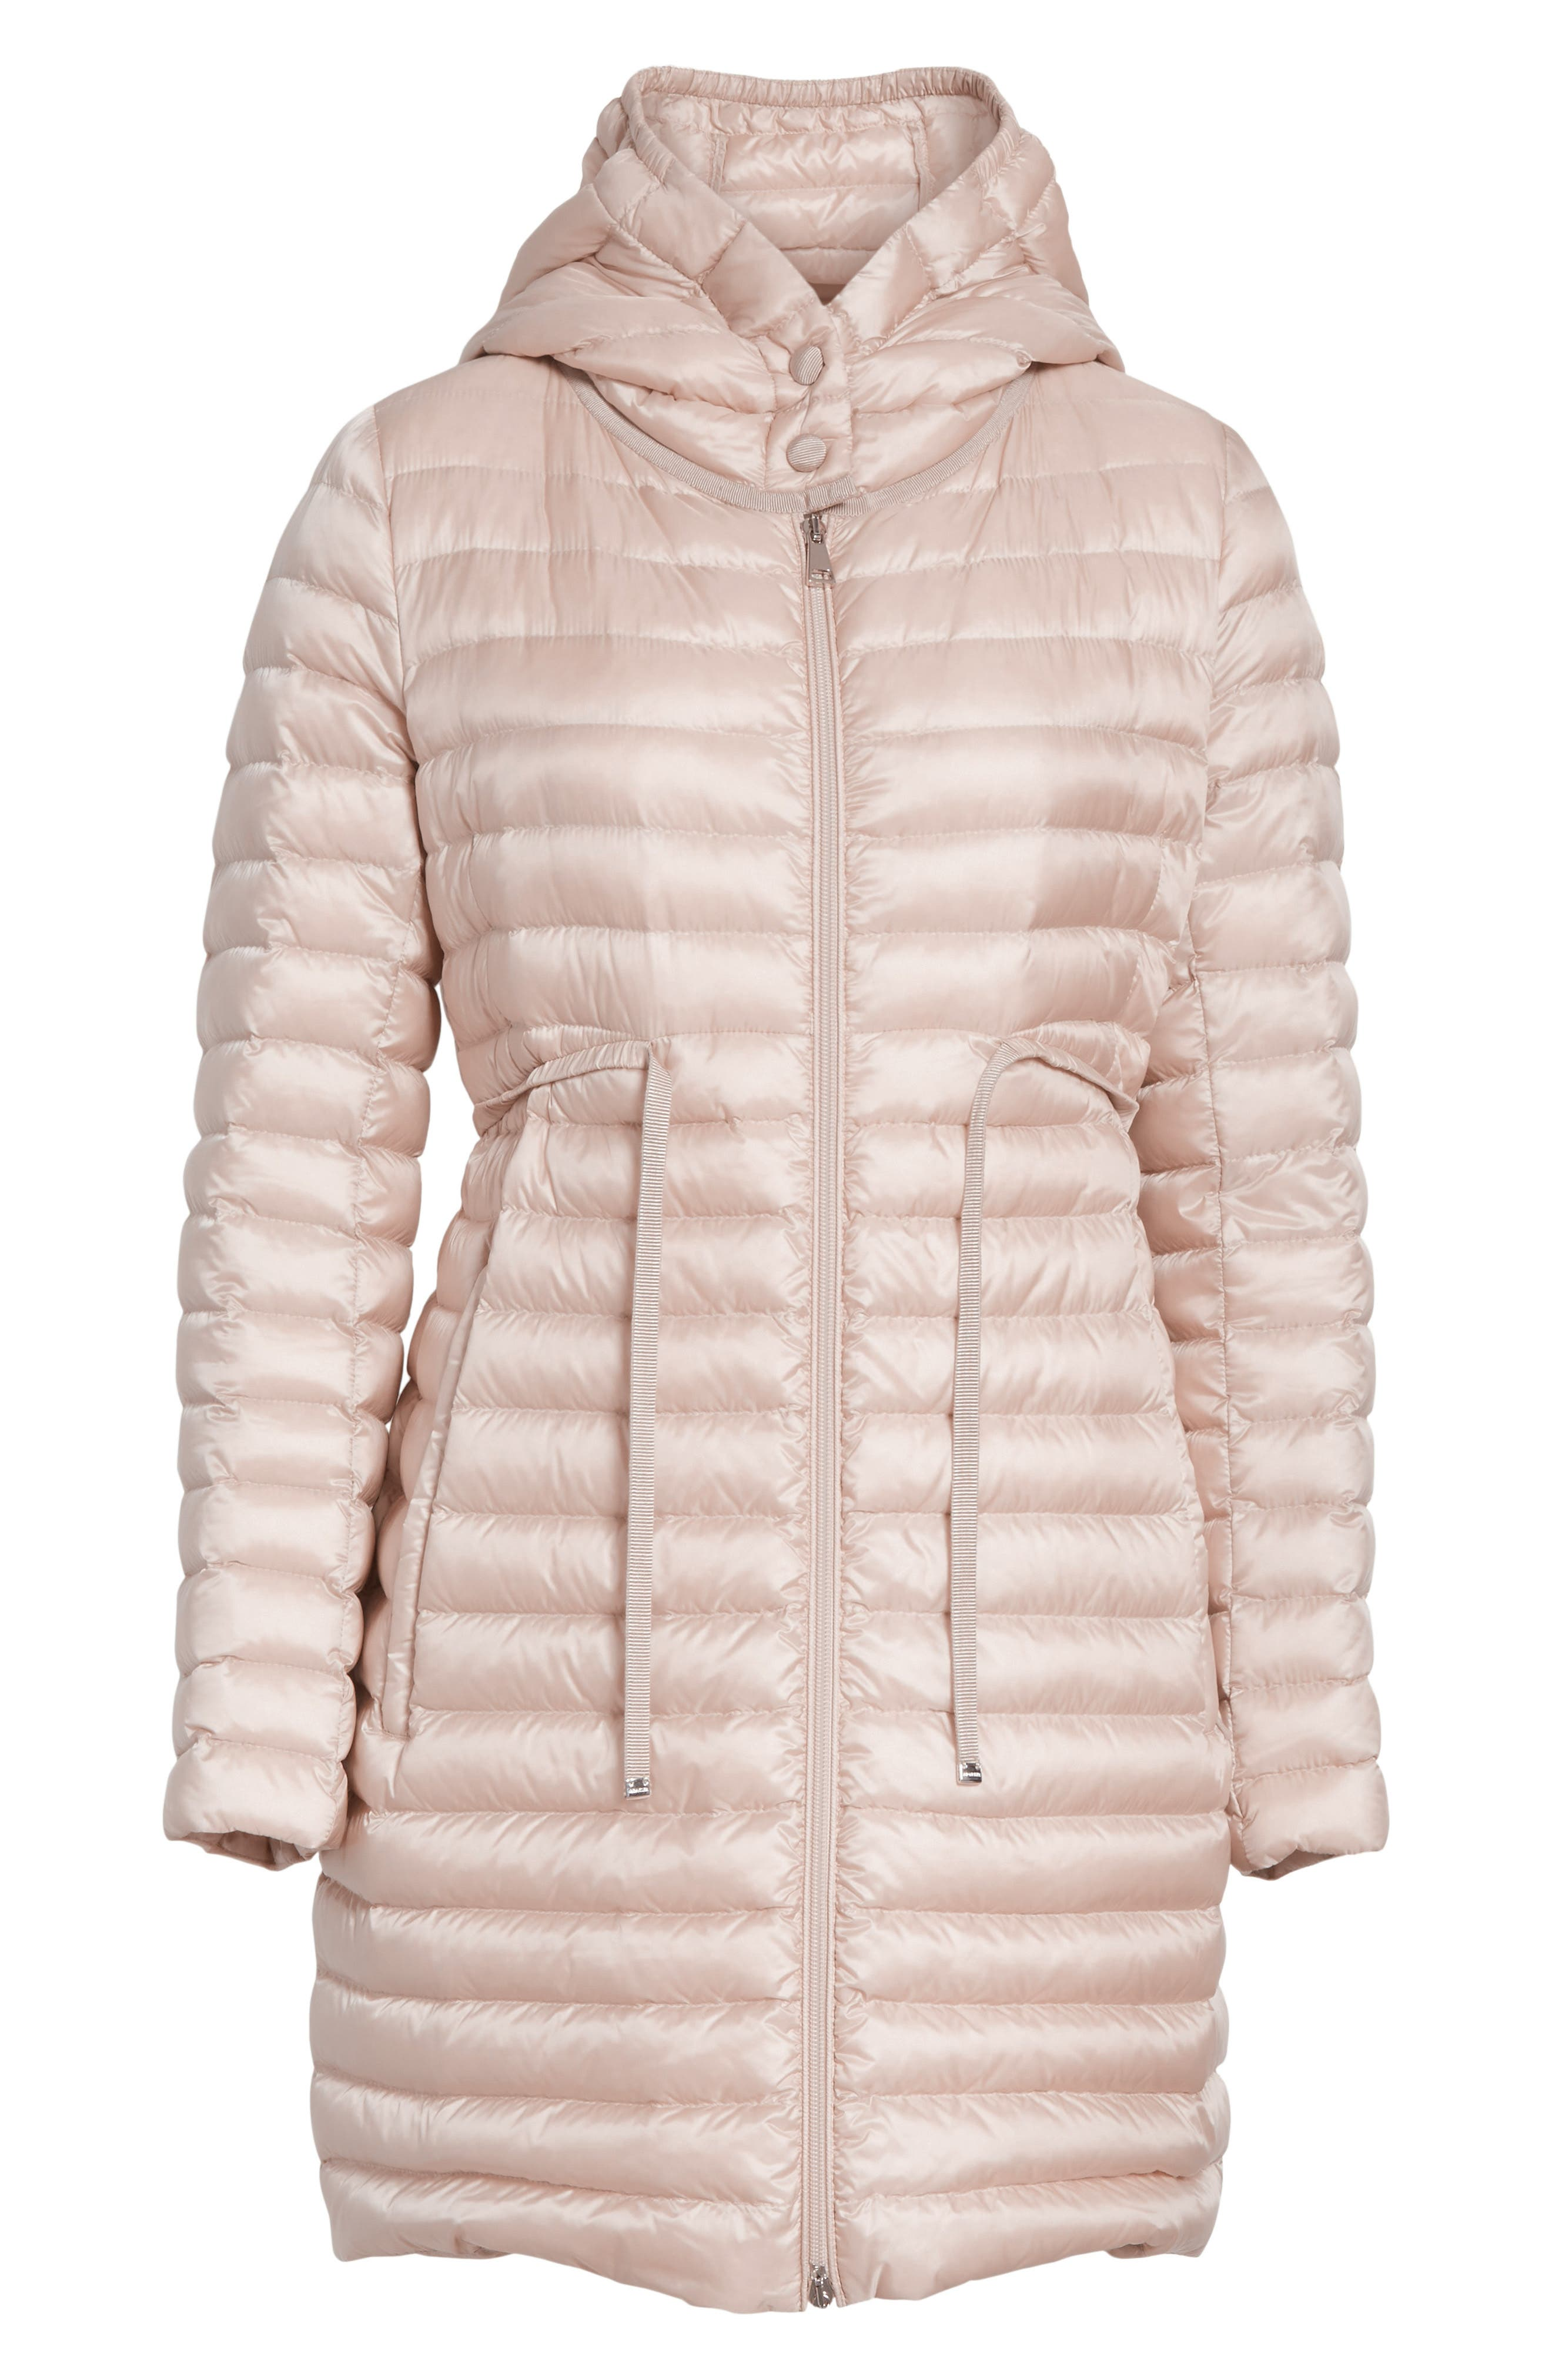 Barbel Water Resistant Long Hooded Down Jacket,                             Alternate thumbnail 5, color,                             BLUSH